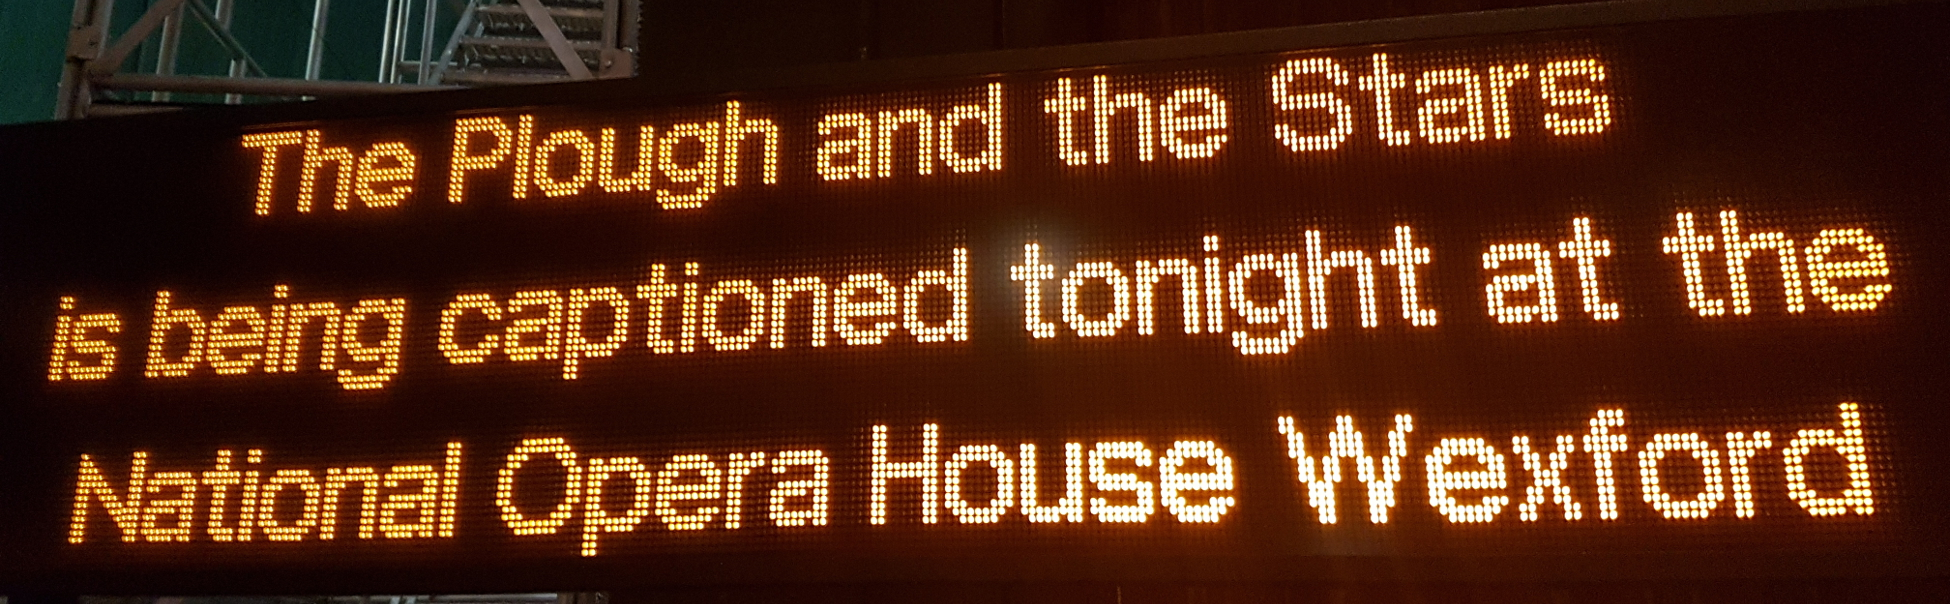 the-plough-and-the-stars-national-opera-house-7